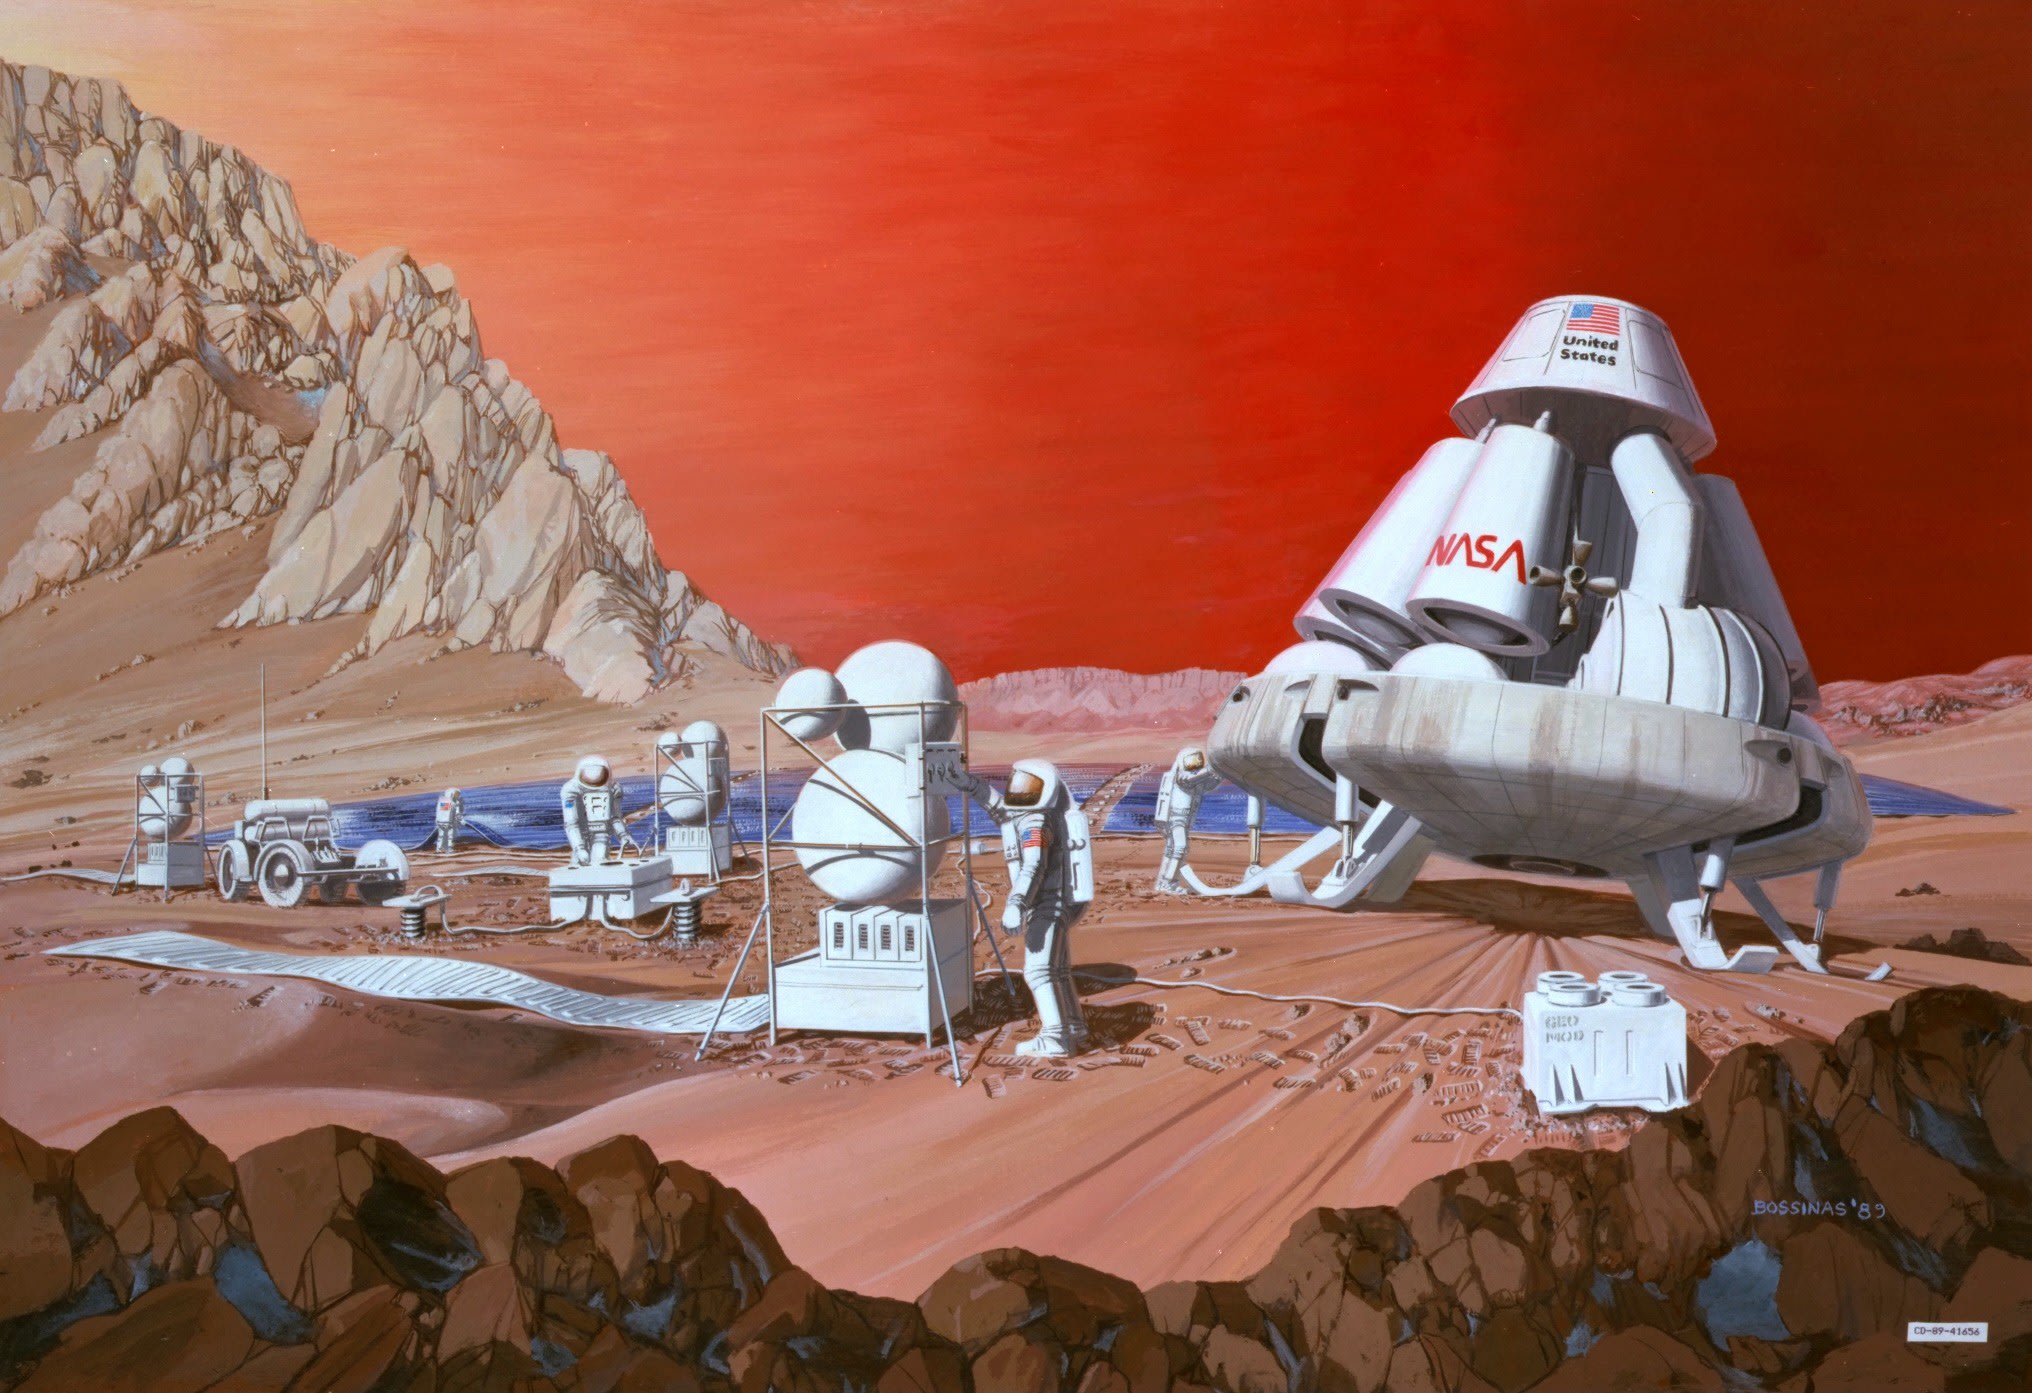 The author of 'The Martian' doesn't think there's life on Mars